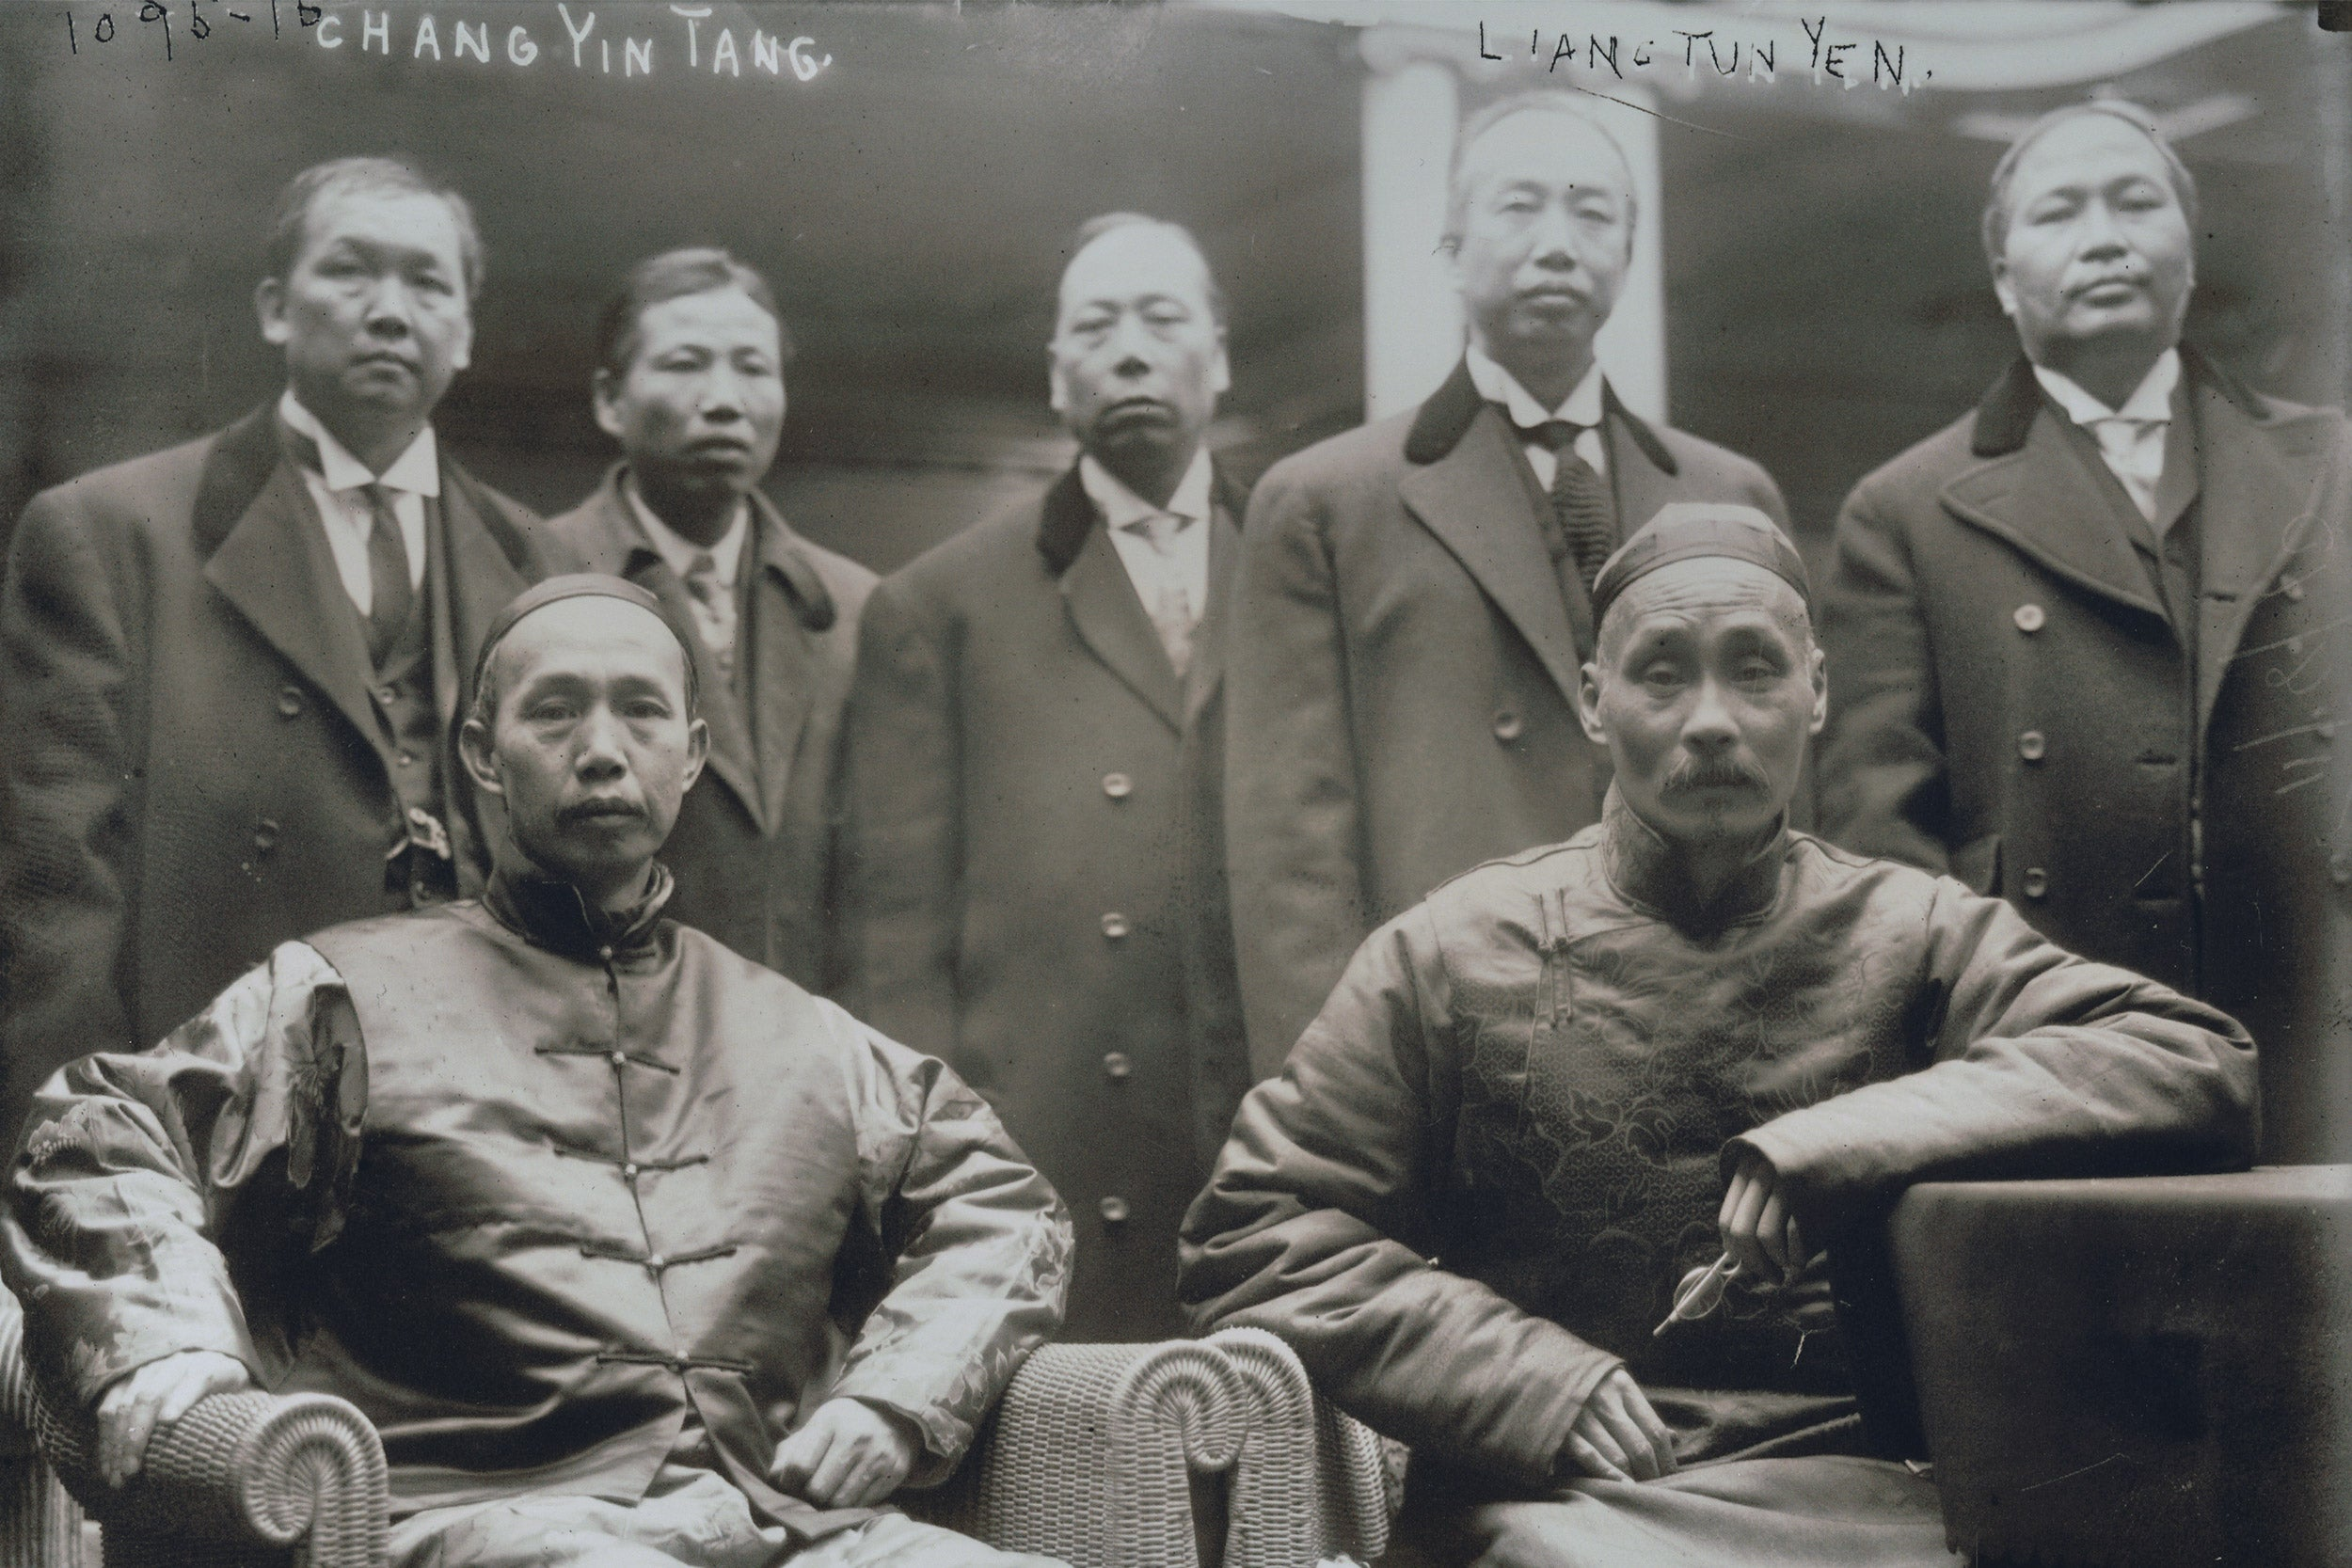 A photo of several Chinese men.